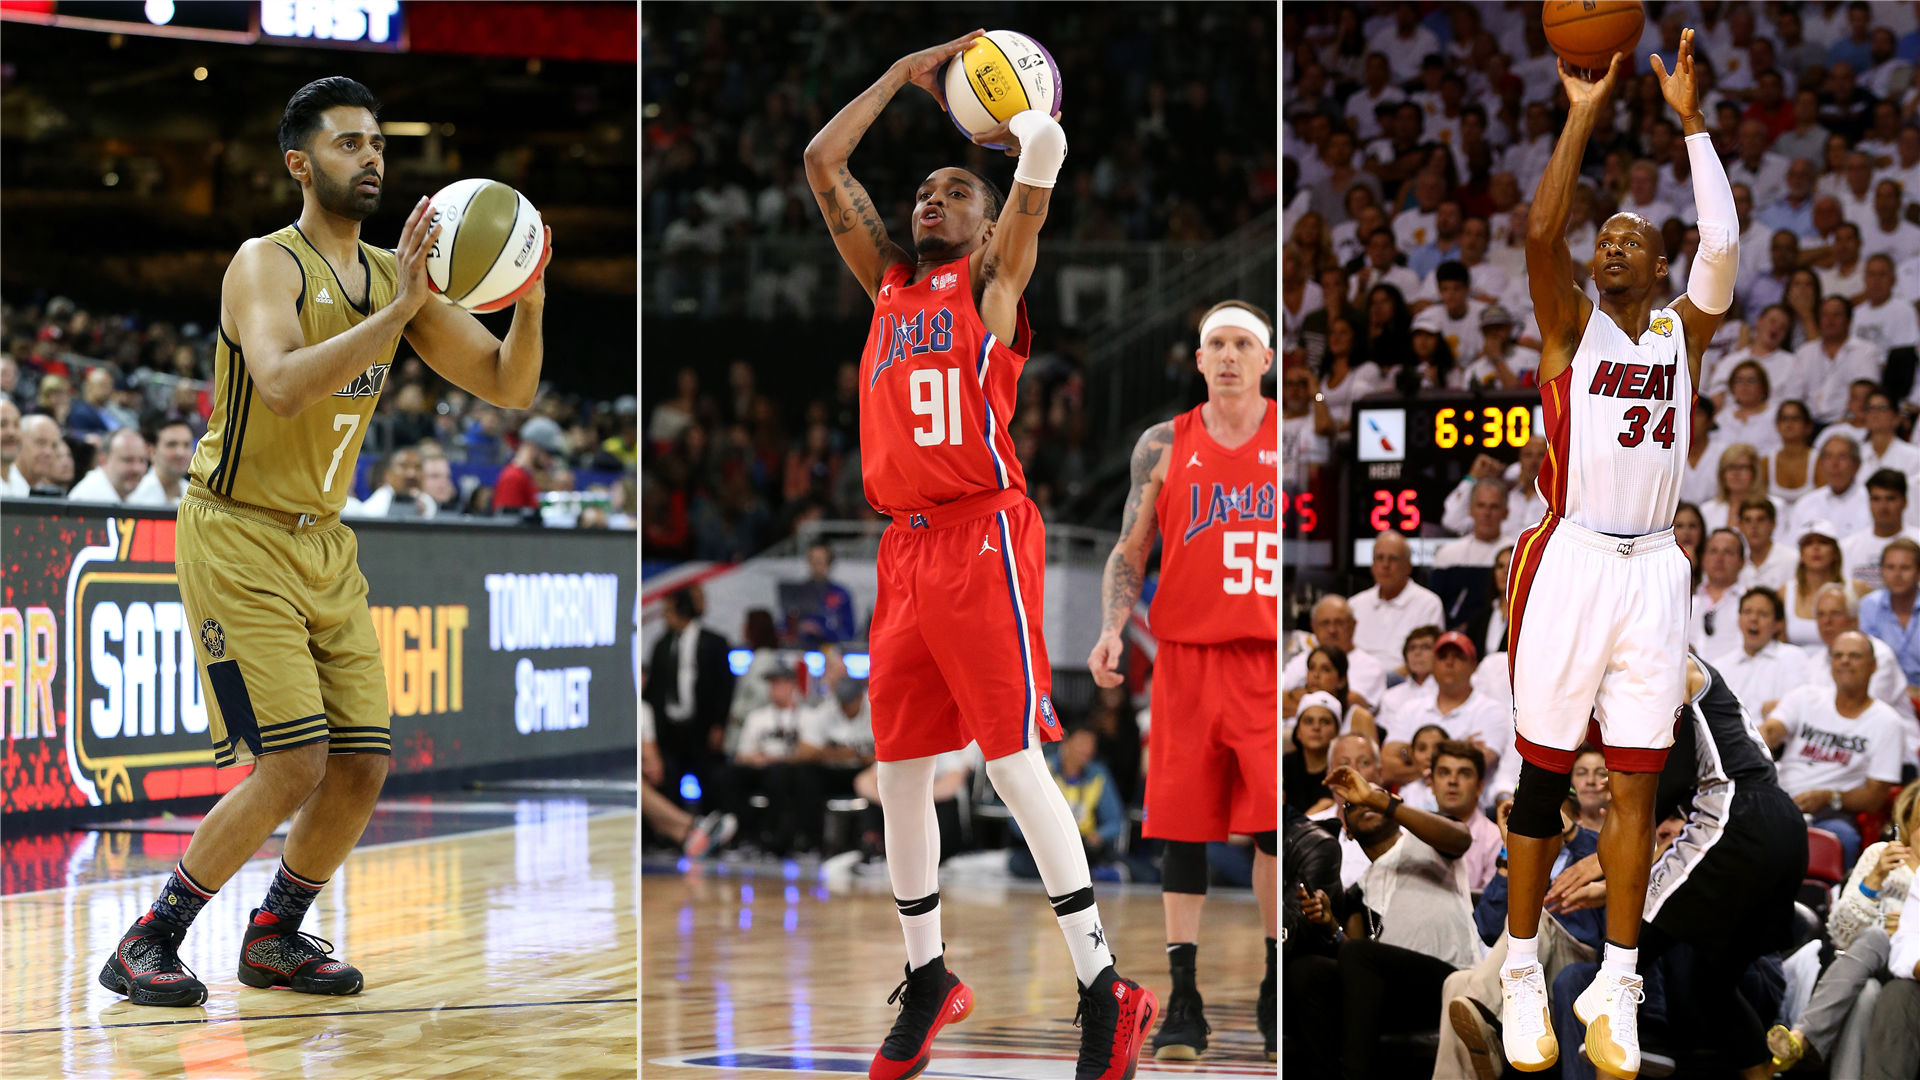 Ray Allen put on a show during the All-Star Celebrity Game